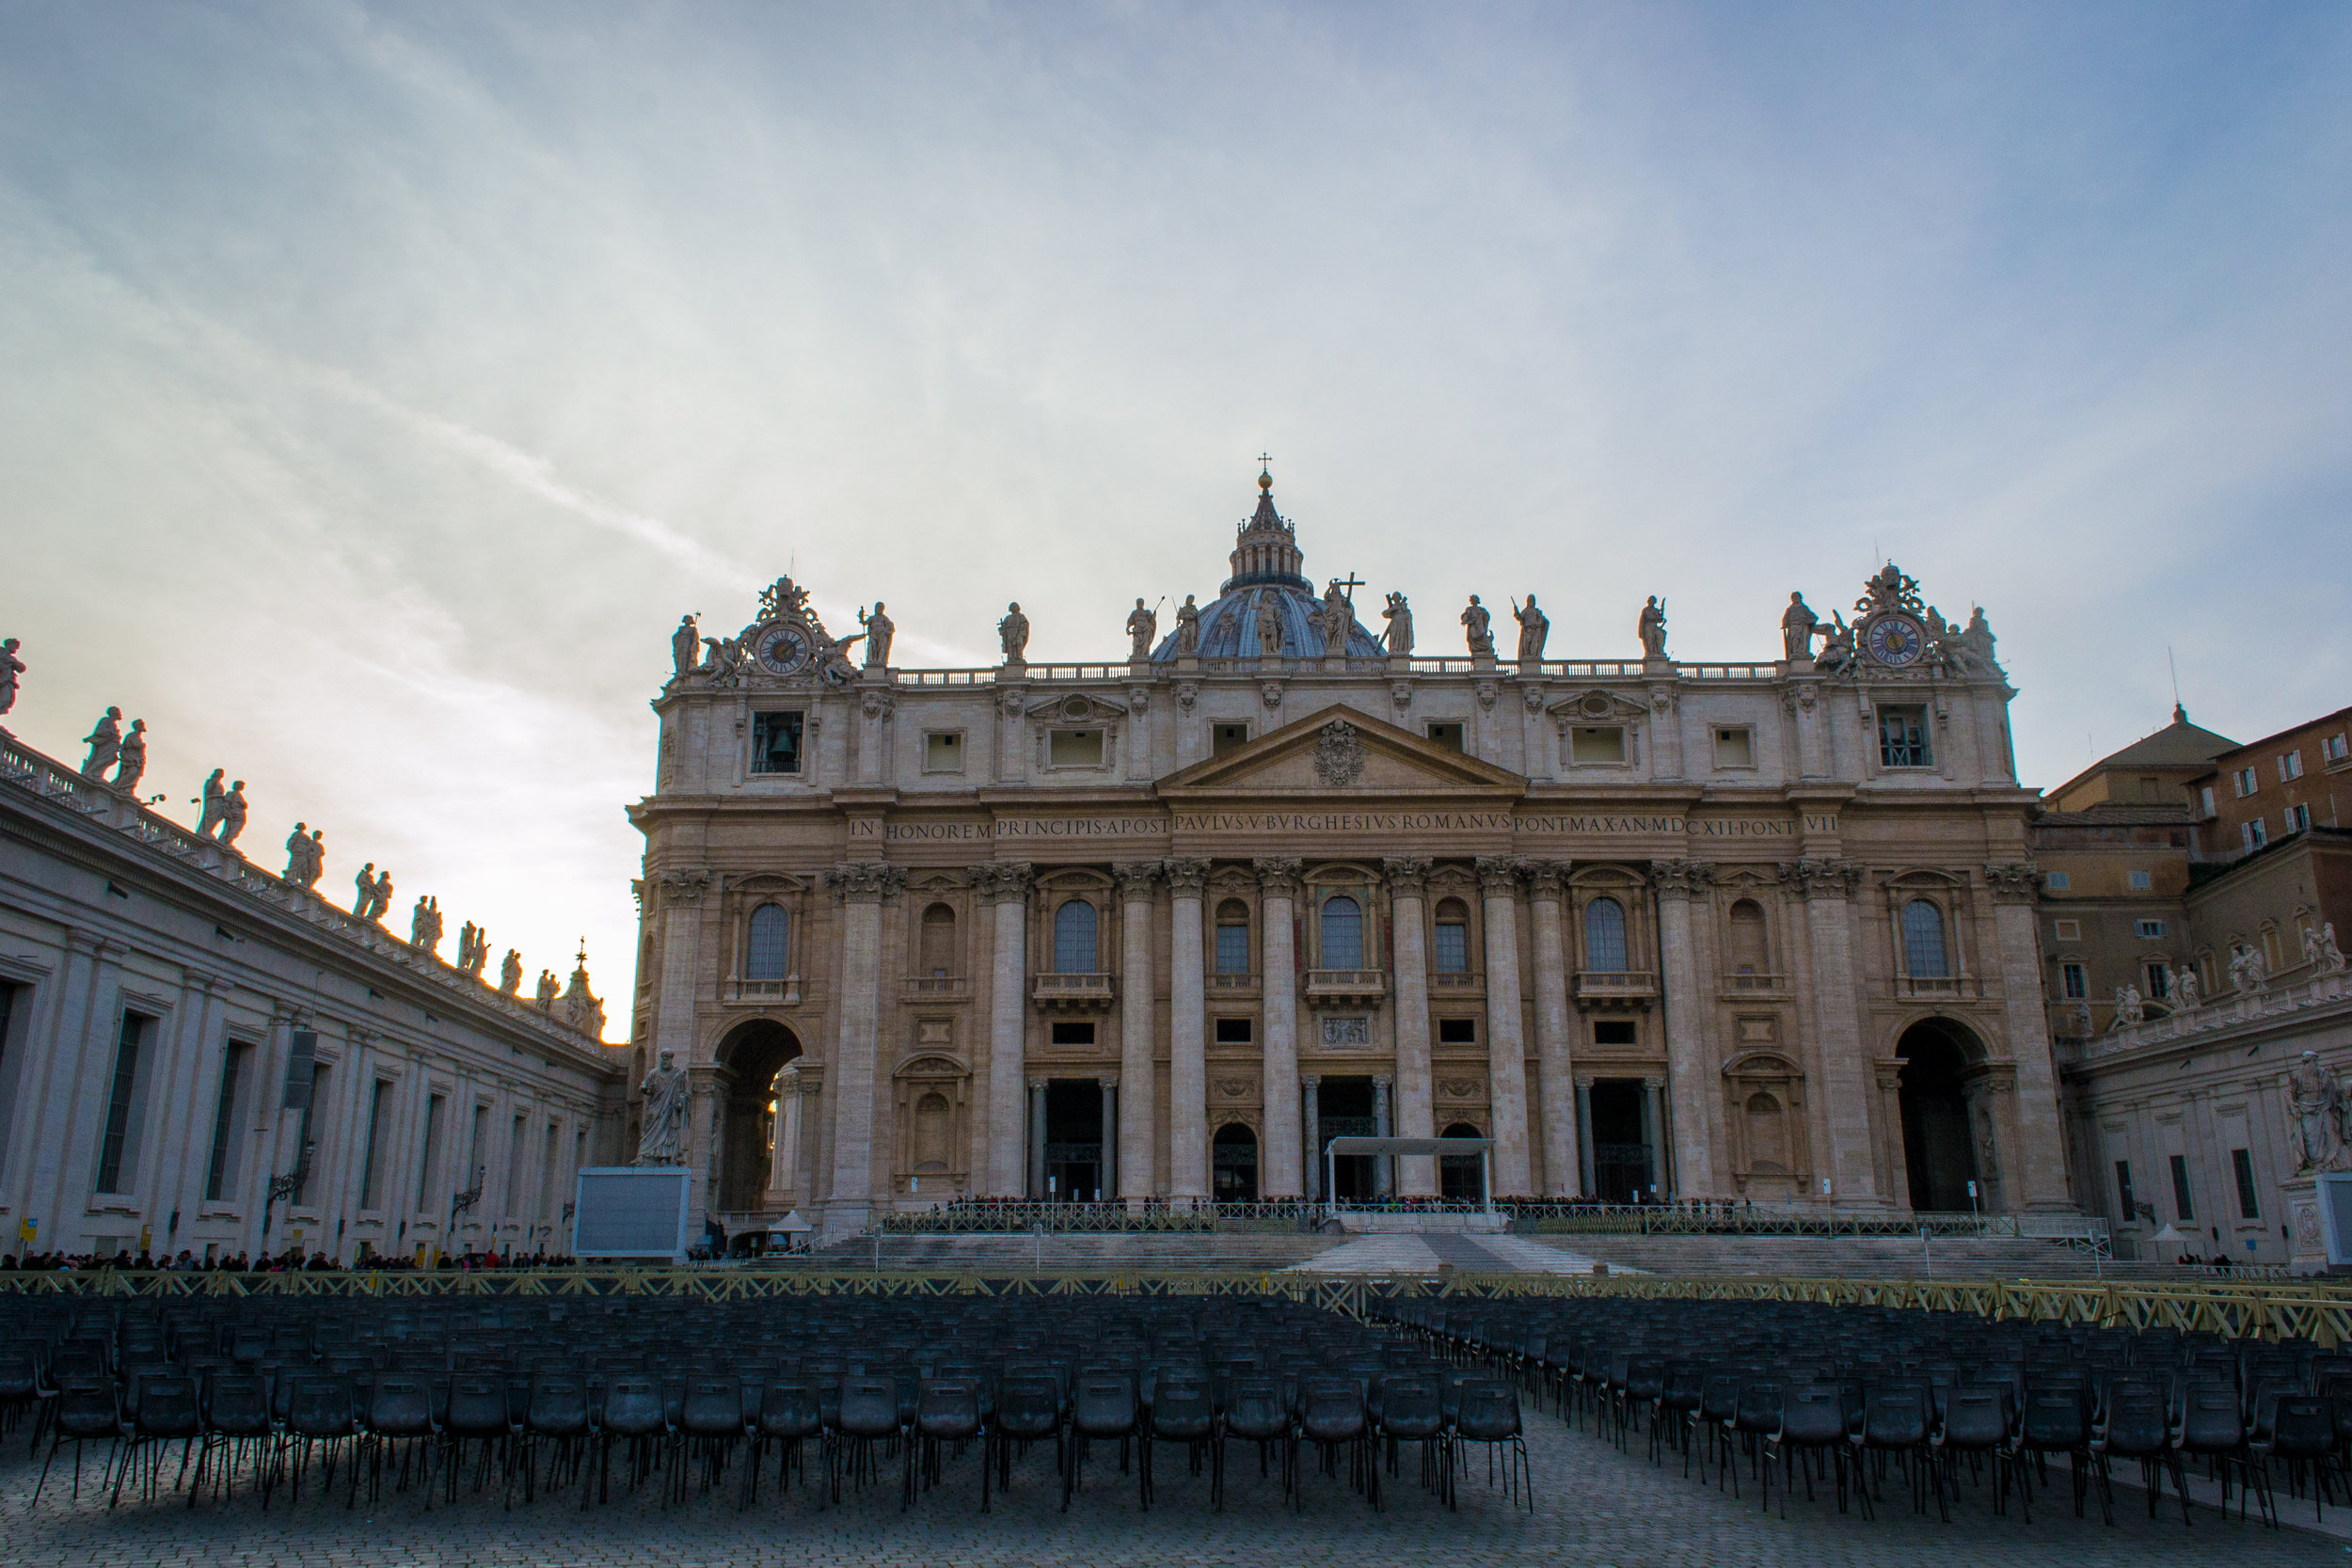 The outside of St. Peter's Basilica